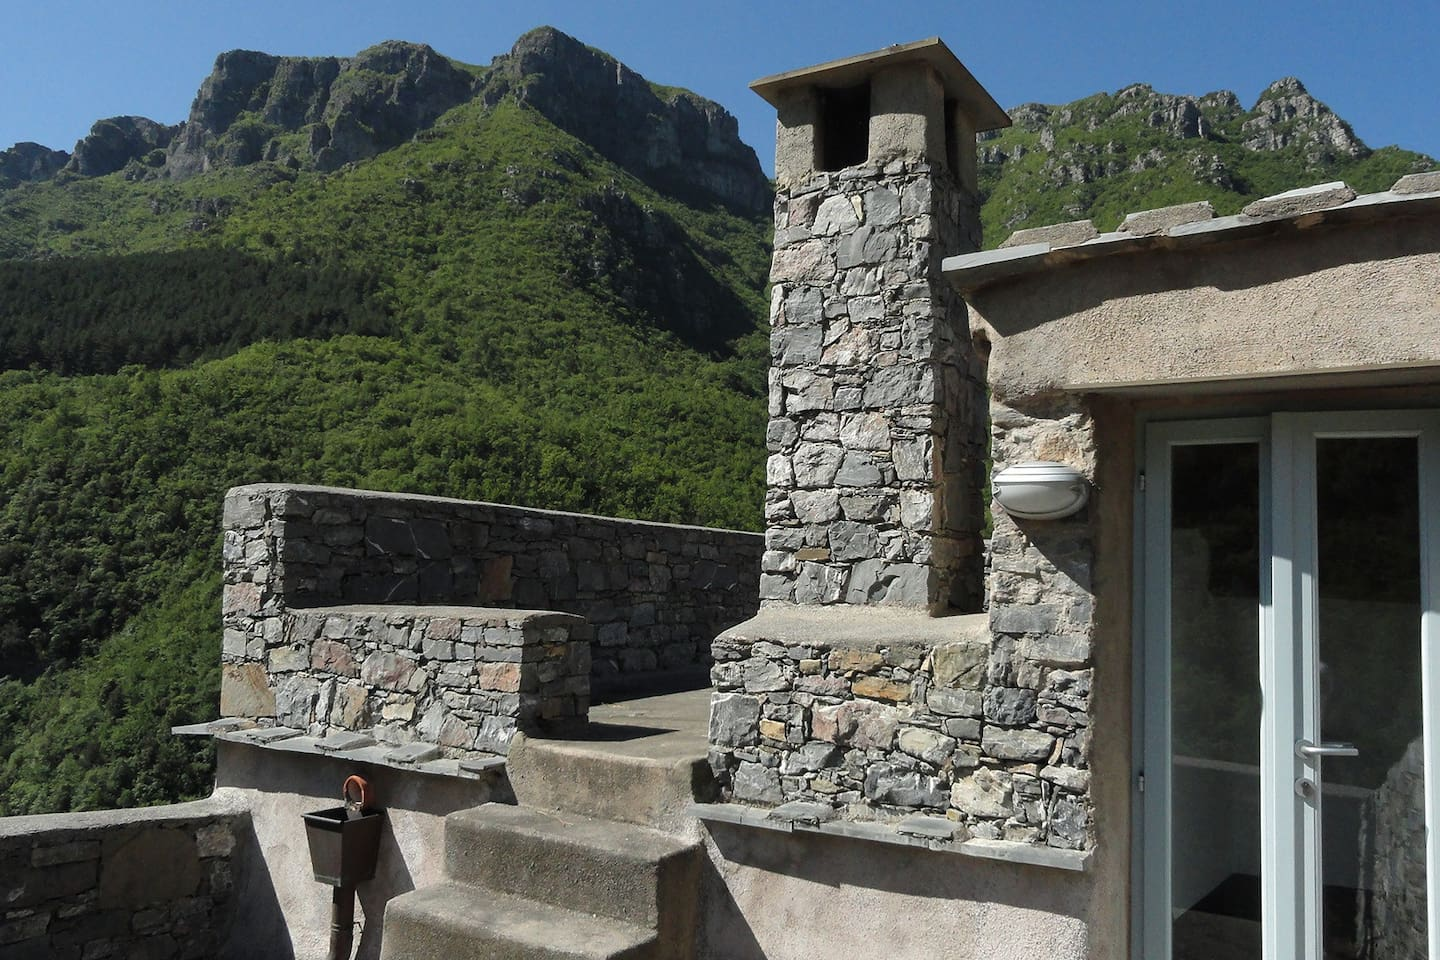 the terrace on the roof has a terrific view of the peaks crowning the village.